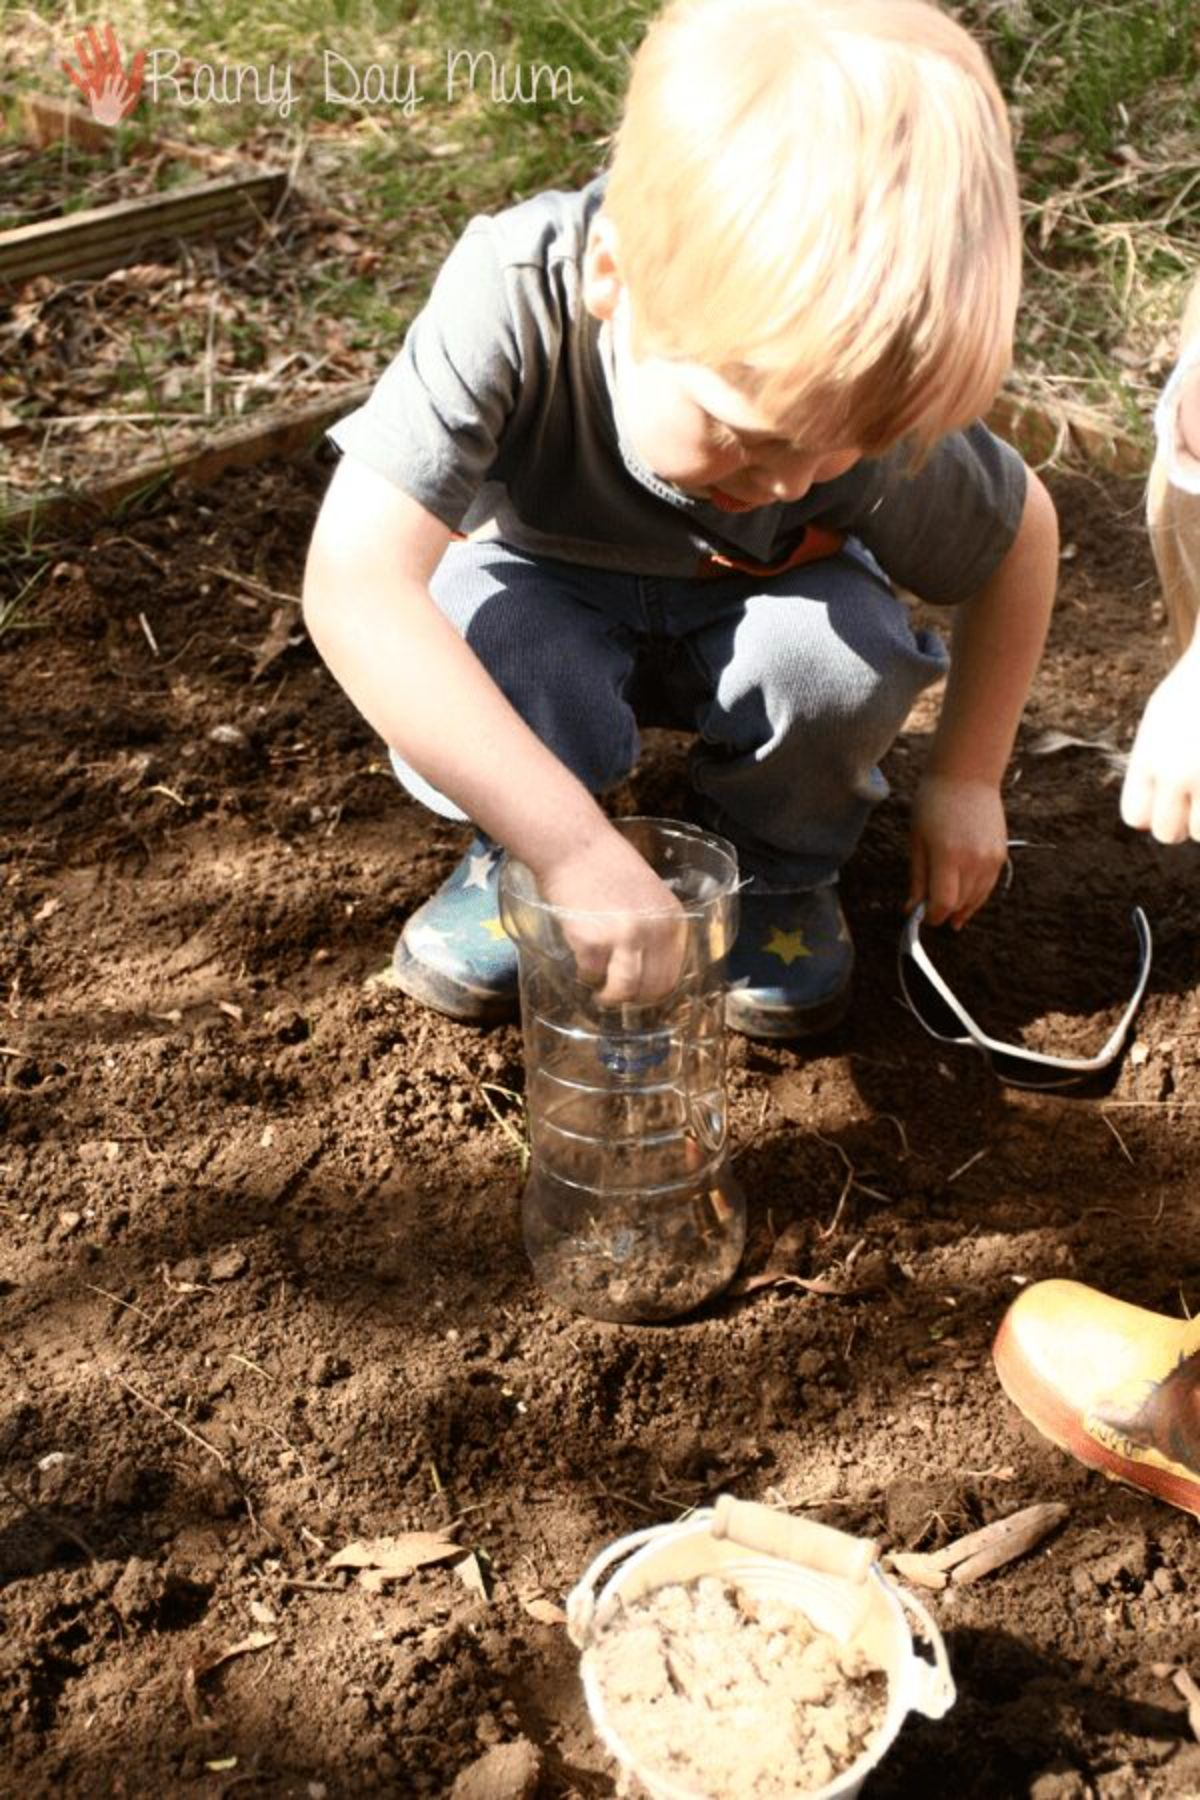 a boy digs in the dirt to fill up a plastic bottle